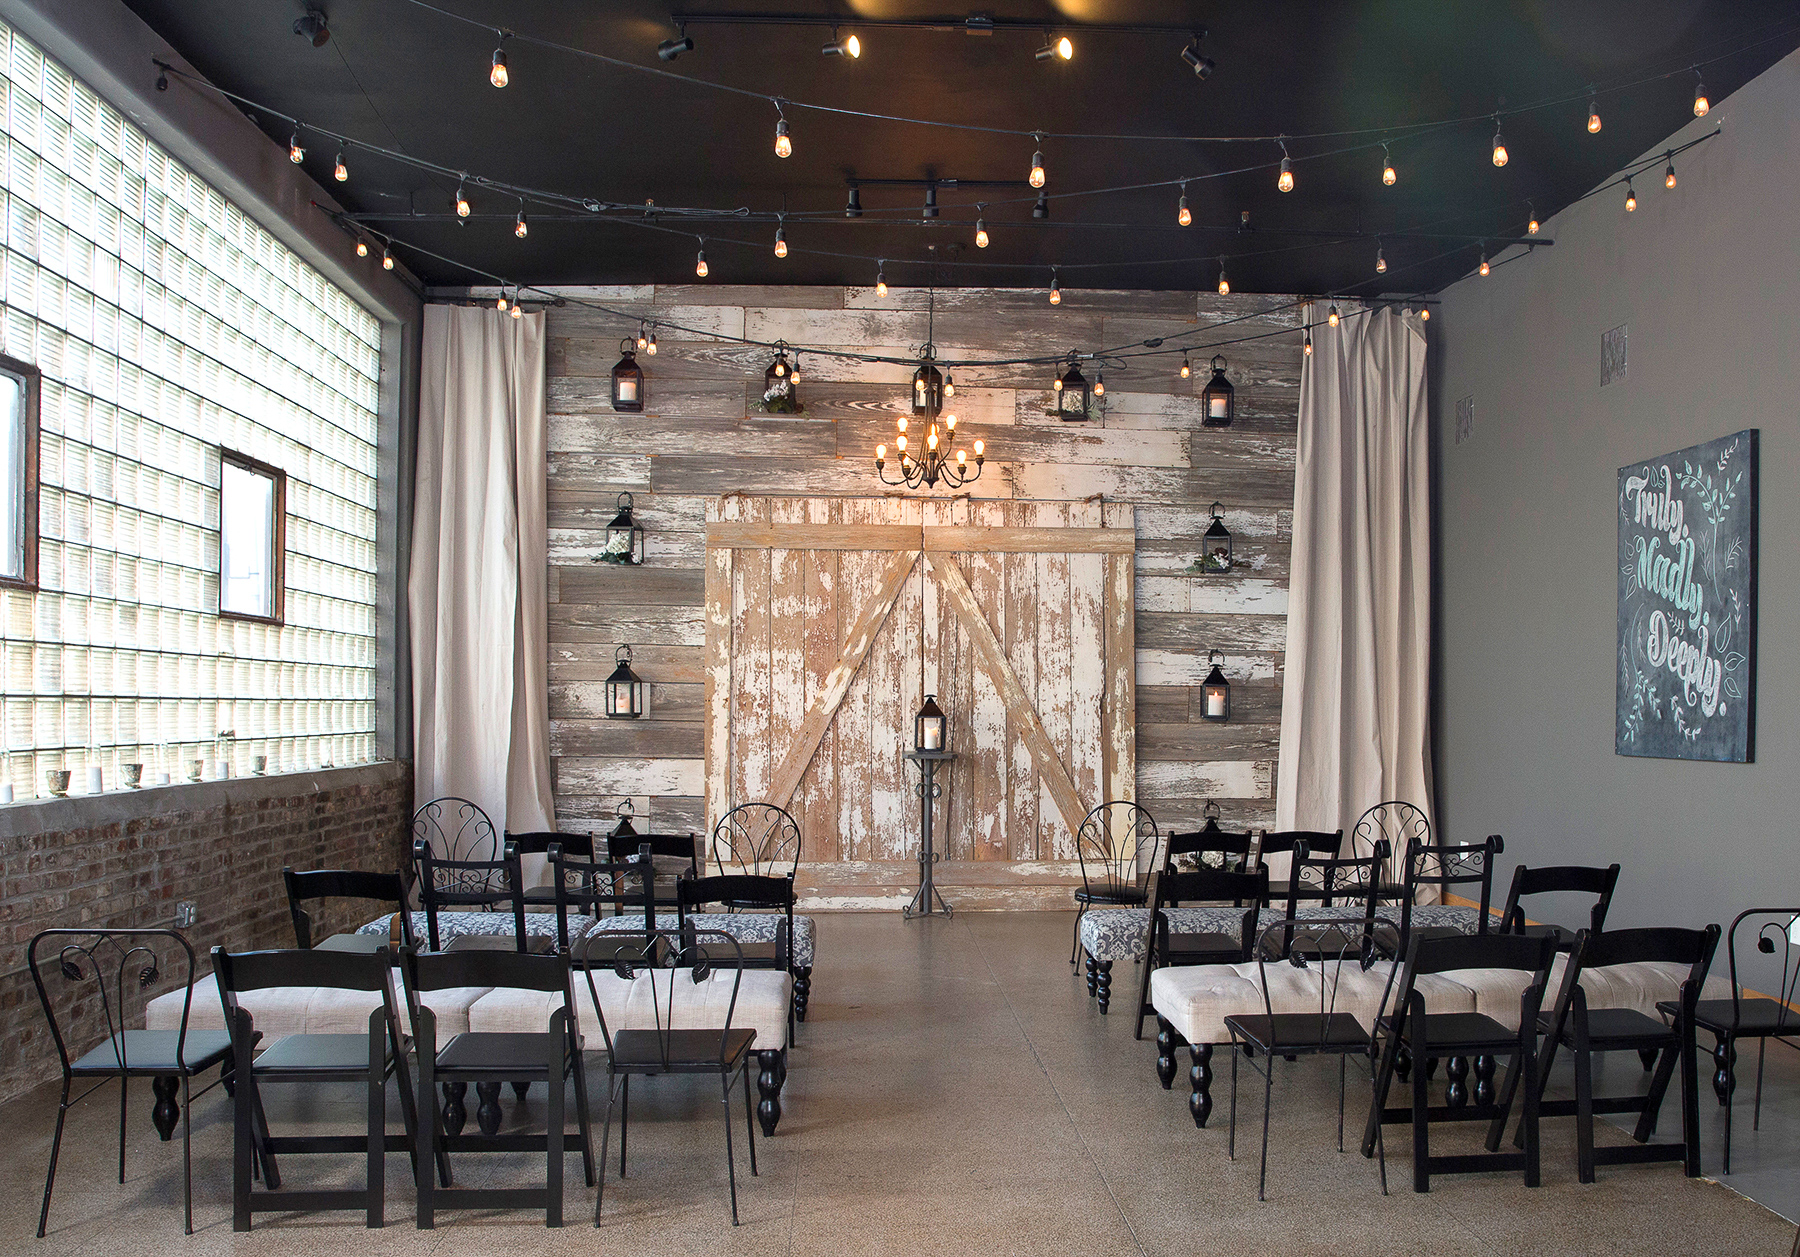 THE VOW EXCHANGE CHAPEL - EXPLORE OUR CEREMONY + RECEPTION PACKAGES AT THIS URBAN & RUSTIC VENUE LOCATION.